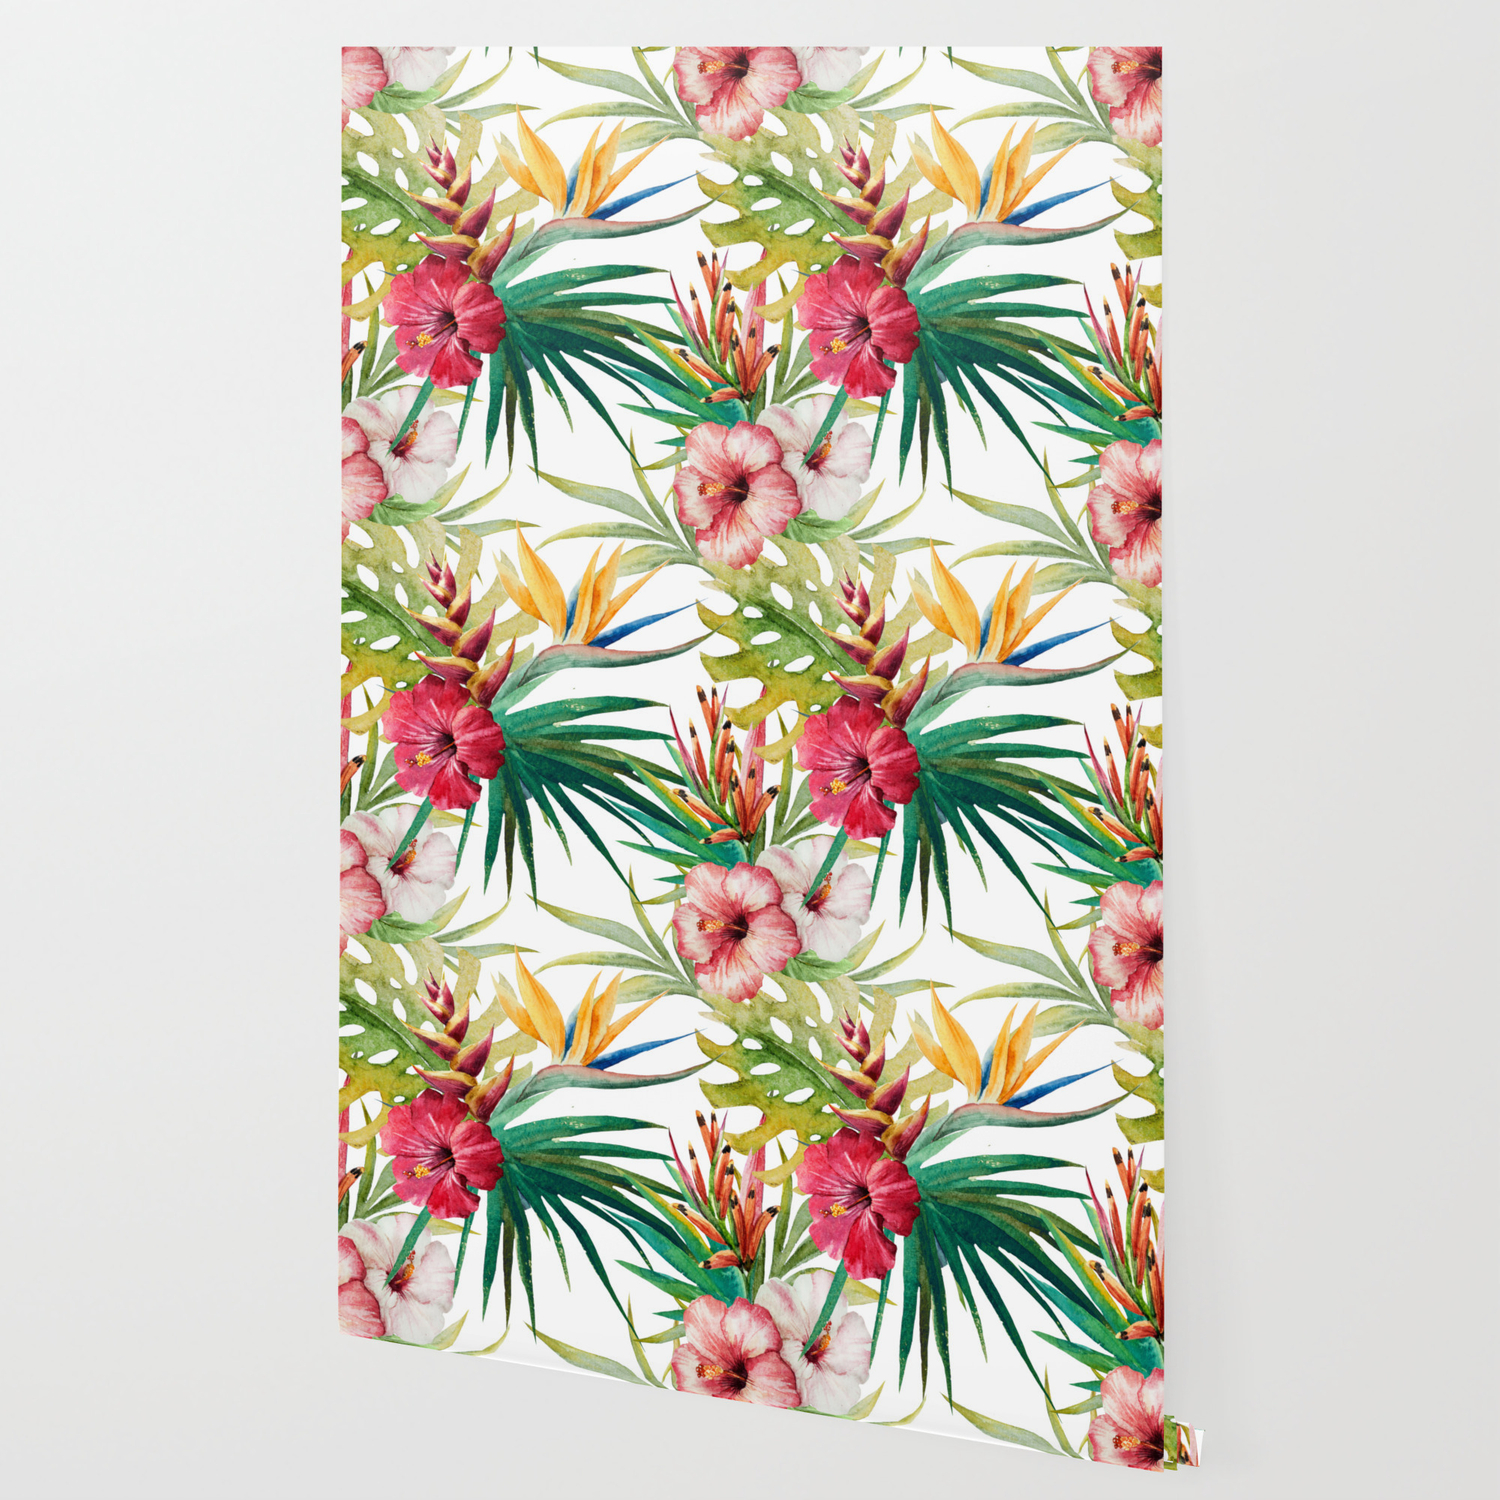 Tropical Floral Pattern 05 Wallpaper By Serigraphonart Society6